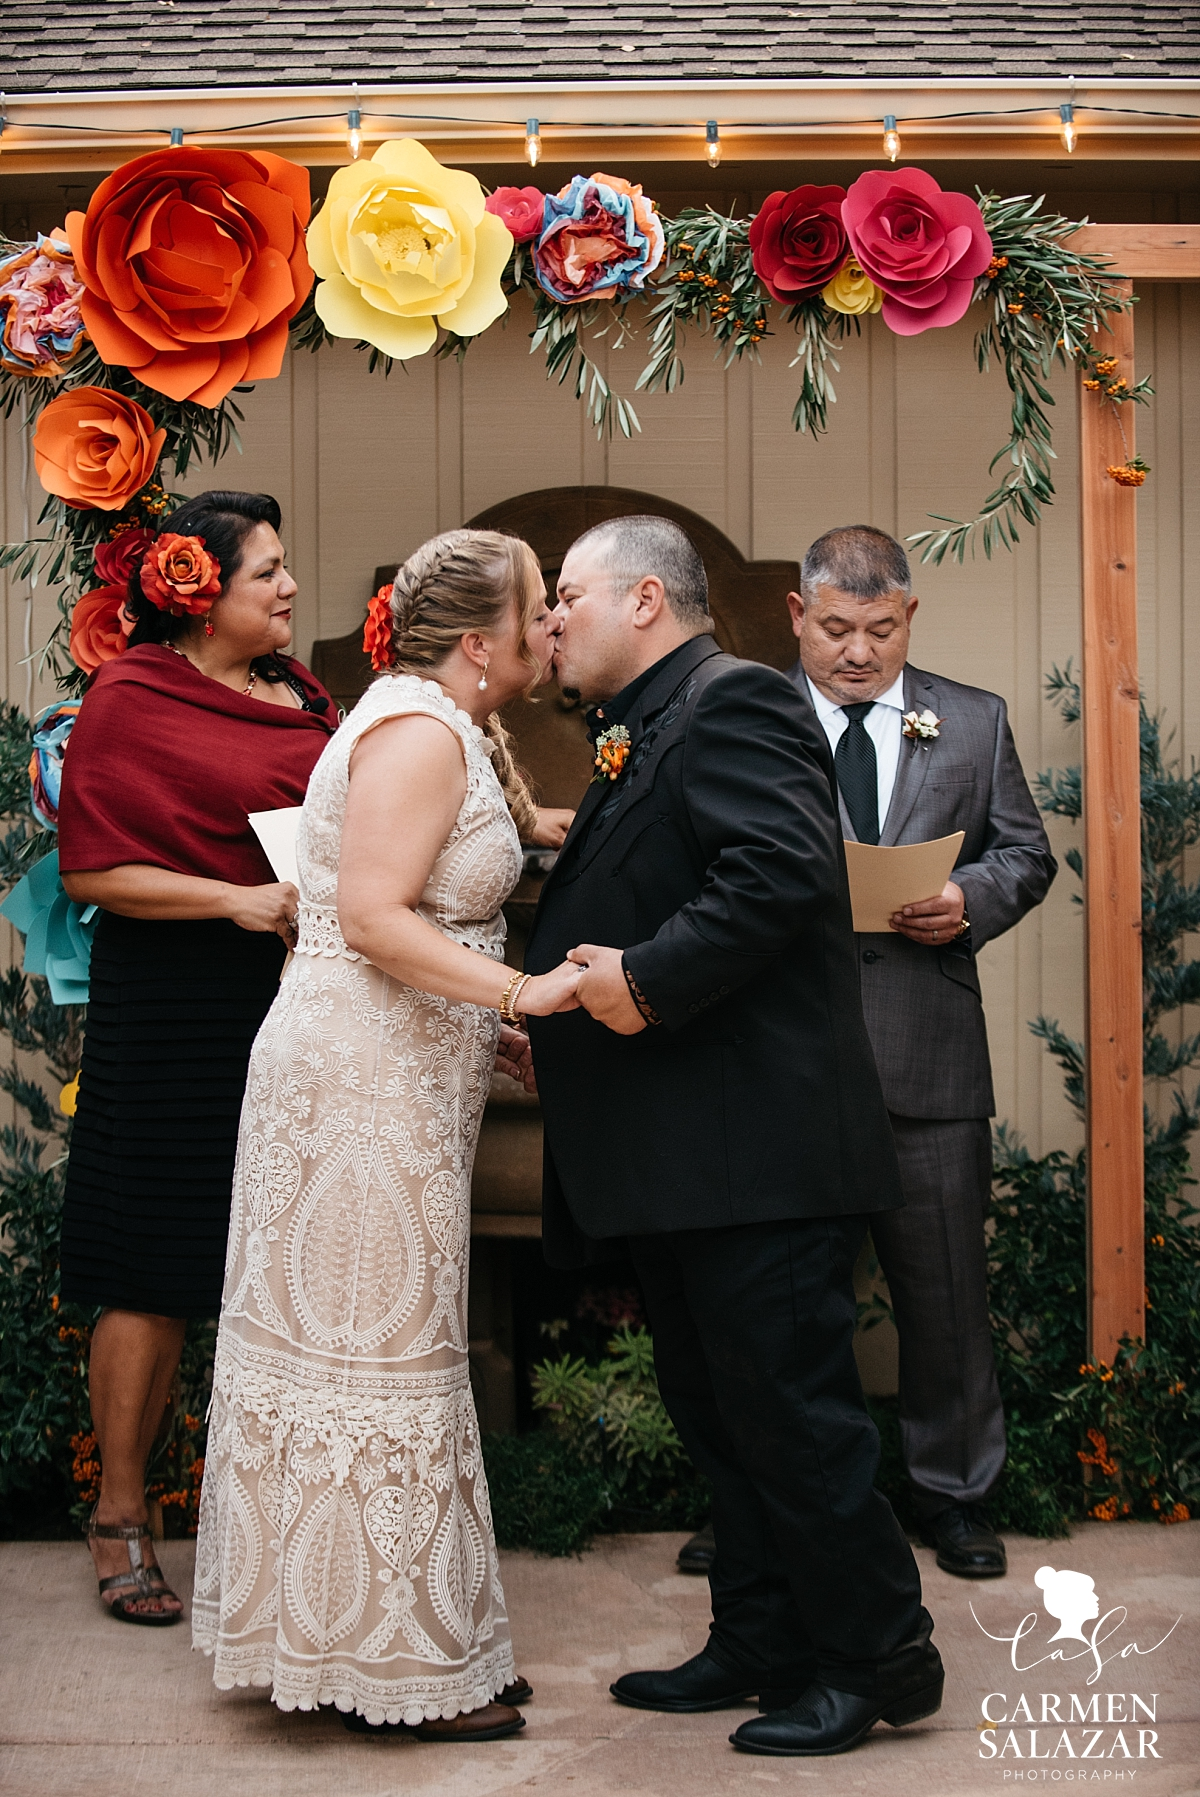 First kiss at Mexican private estate wedding ceremony - Carmen Salazar